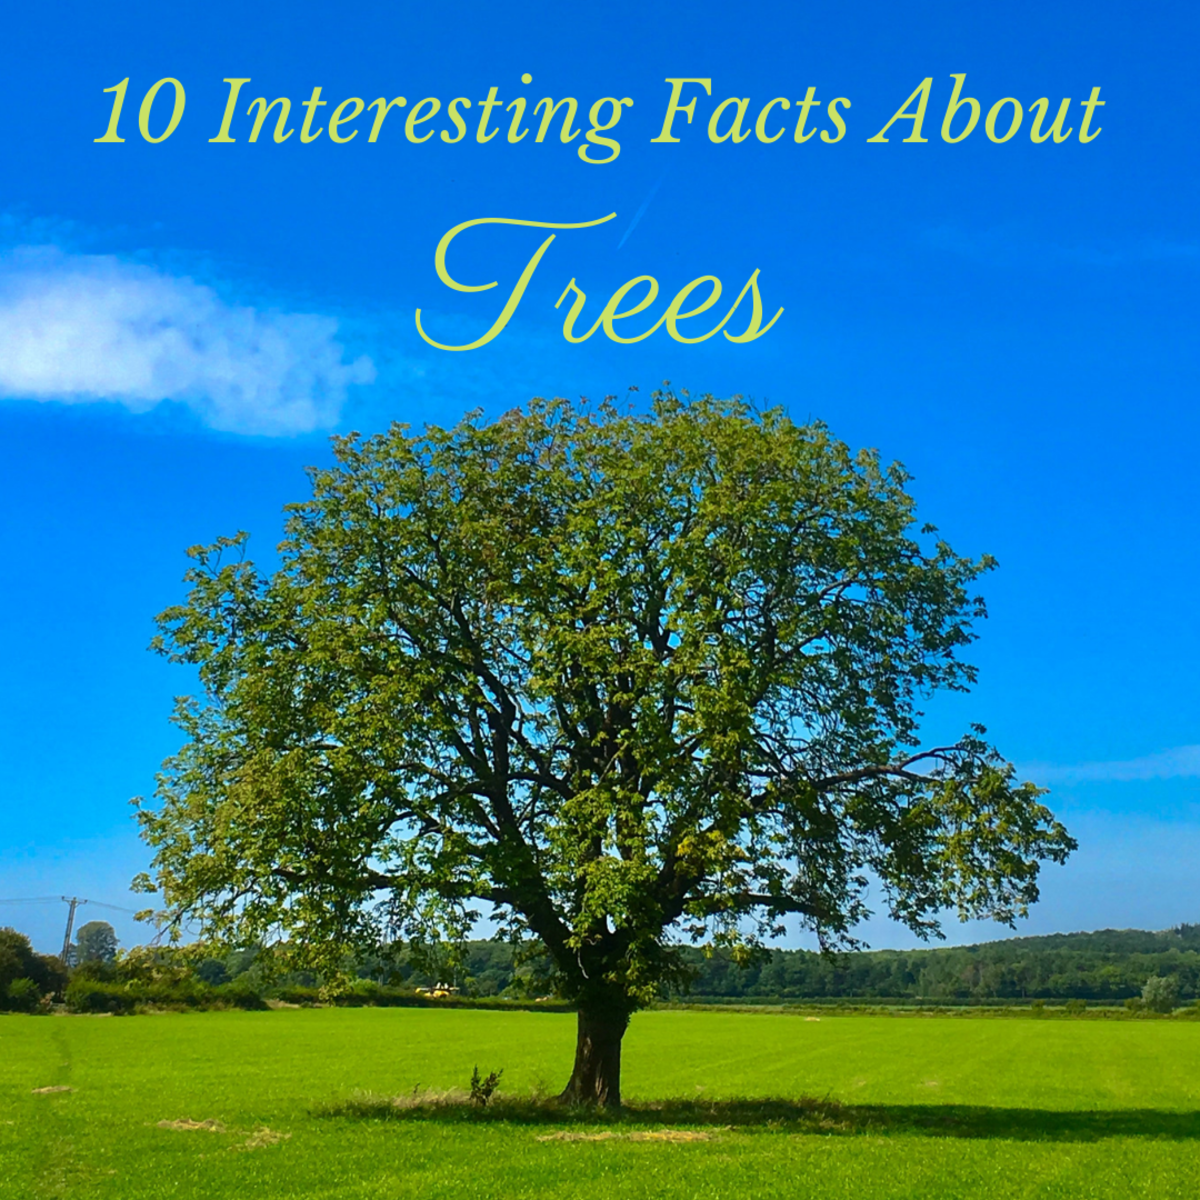 This article will provide 10 fascinating facts about trees that you perhaps did not know.